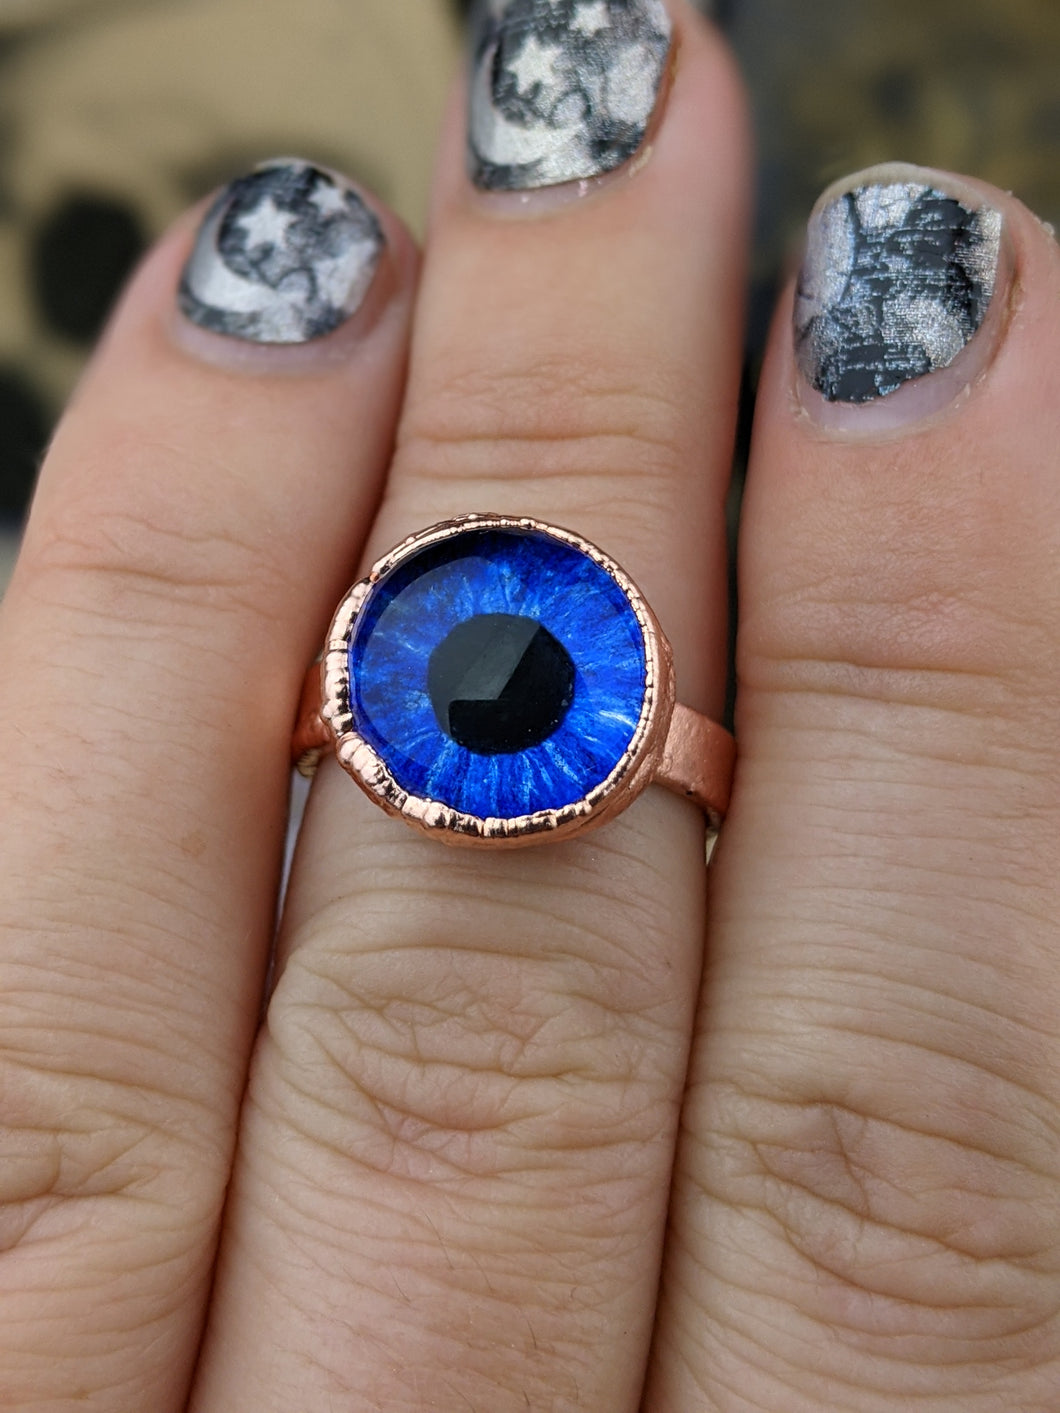 Copper Electroformed Eyeball Ring - Size 7 Bright Blue